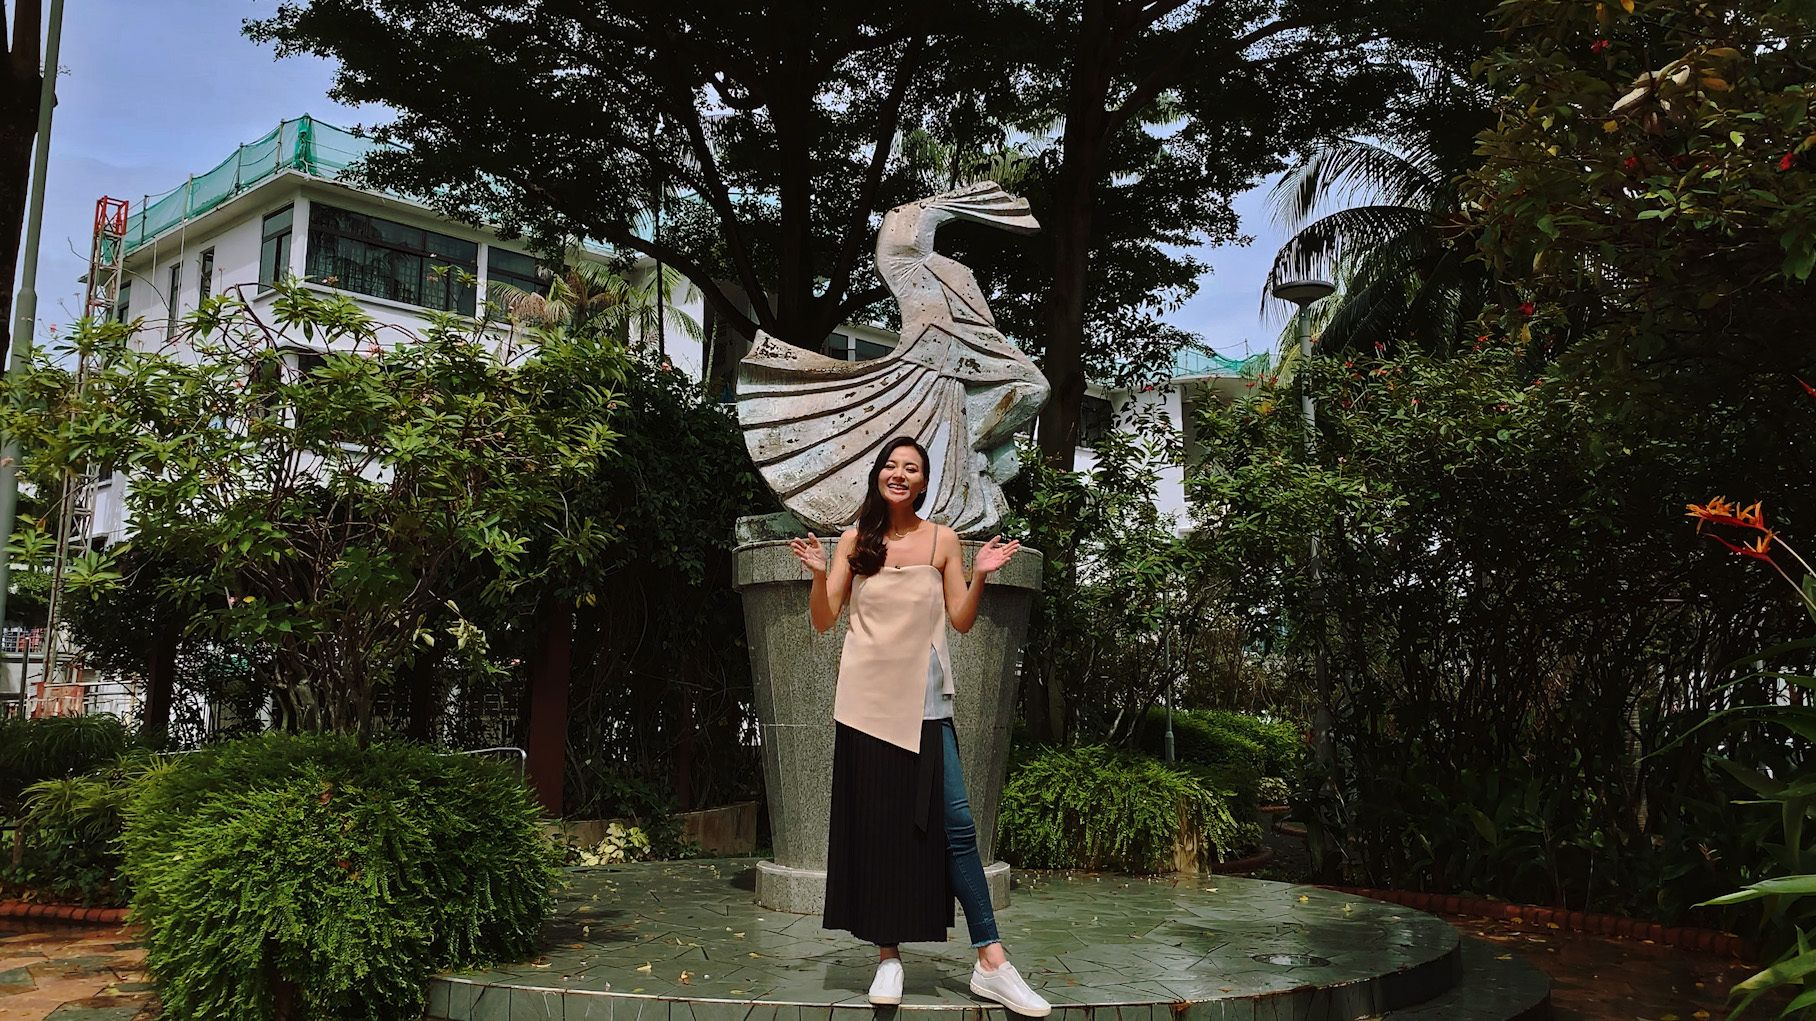 Tatler Tours: Cheryl Wee Takes Us Around Tiong Bahru | The Best Food, Activities and Spots